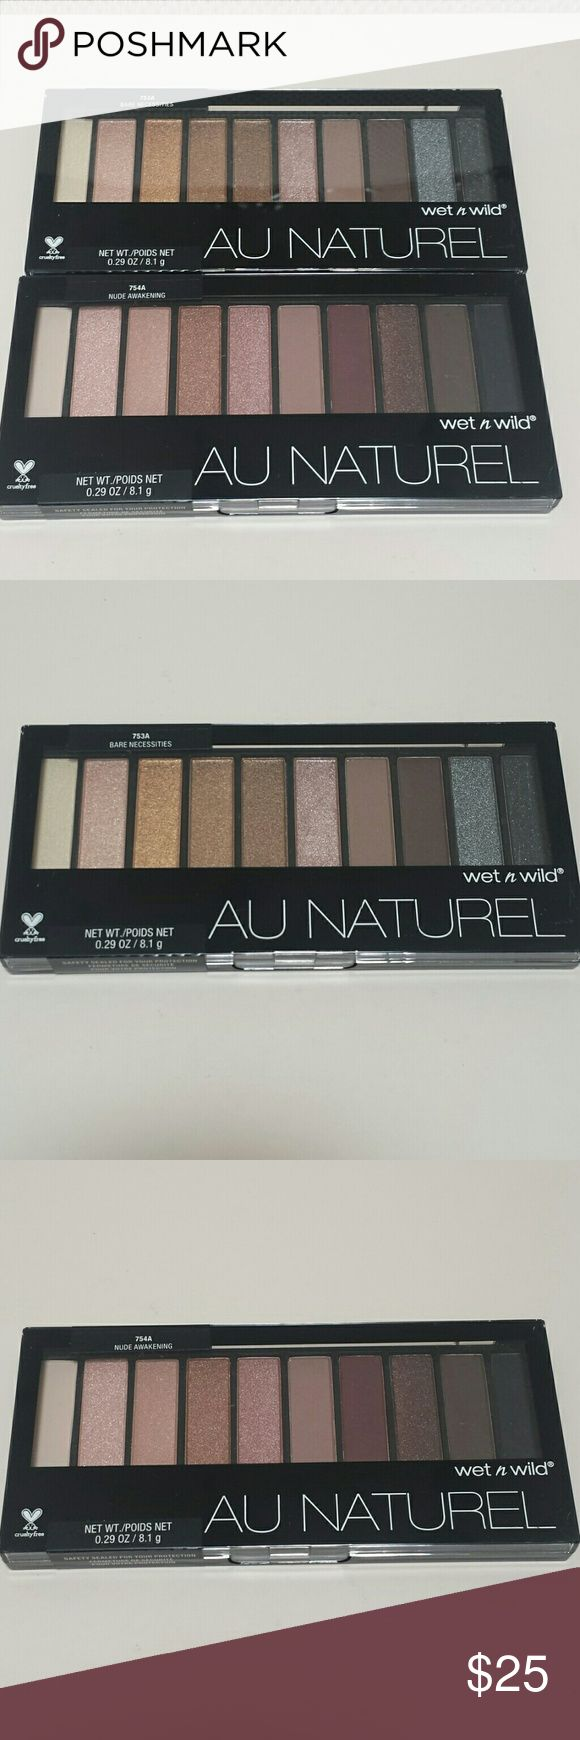 Wet N Wild Eyeshadow Palettes - Au Naturel palette in Bare Necessities - Au Naturel palette in Nude Awakening  Both are new and never opened.   No trades.   Please submit any offers through the offer option. Wet N Wild Makeup Eyeshadow